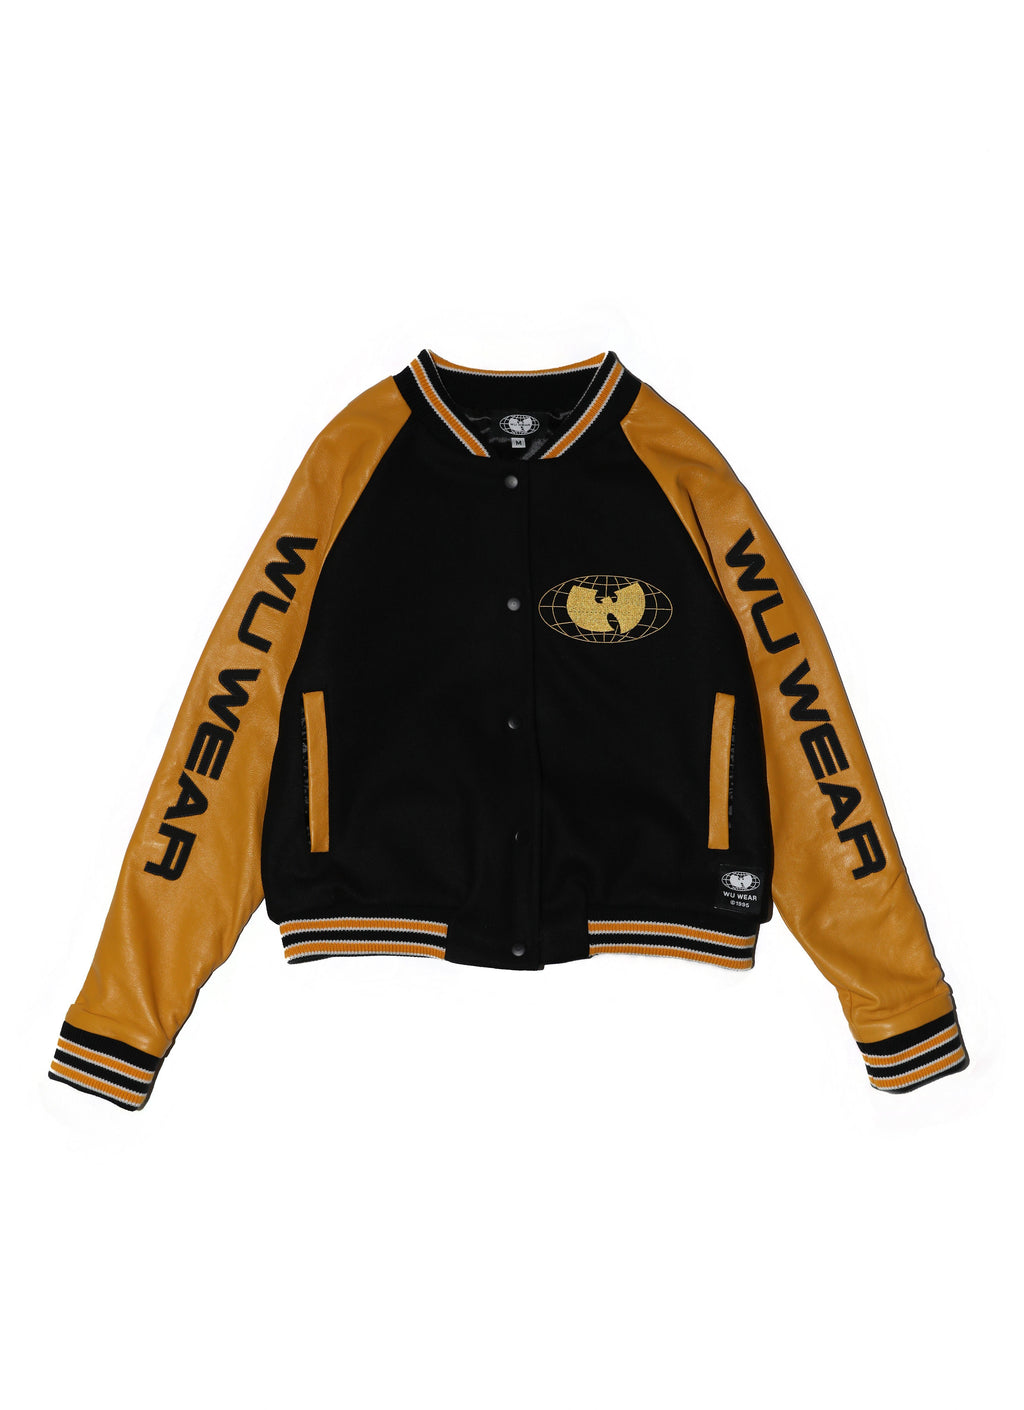 WU WEAR VARSITY JACKET - BLACK AND GOLD - Wu Wear